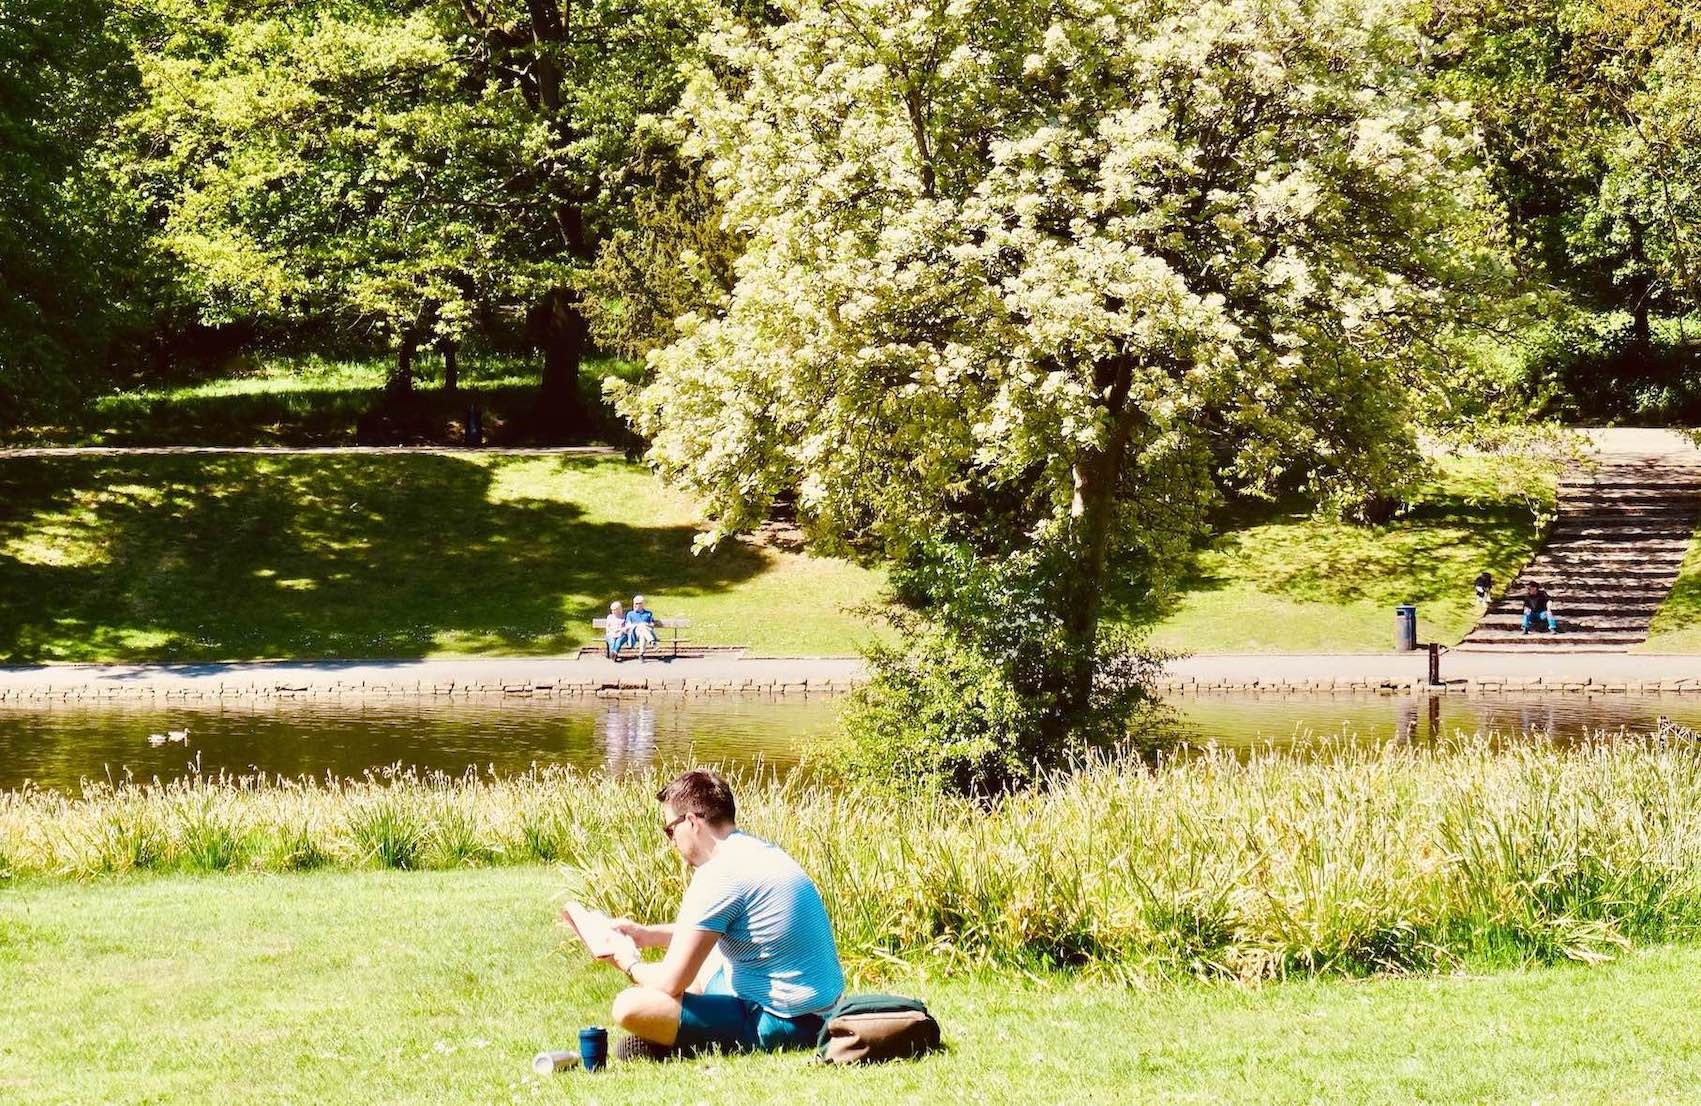 Man reading in Liverpool's Sefton Park